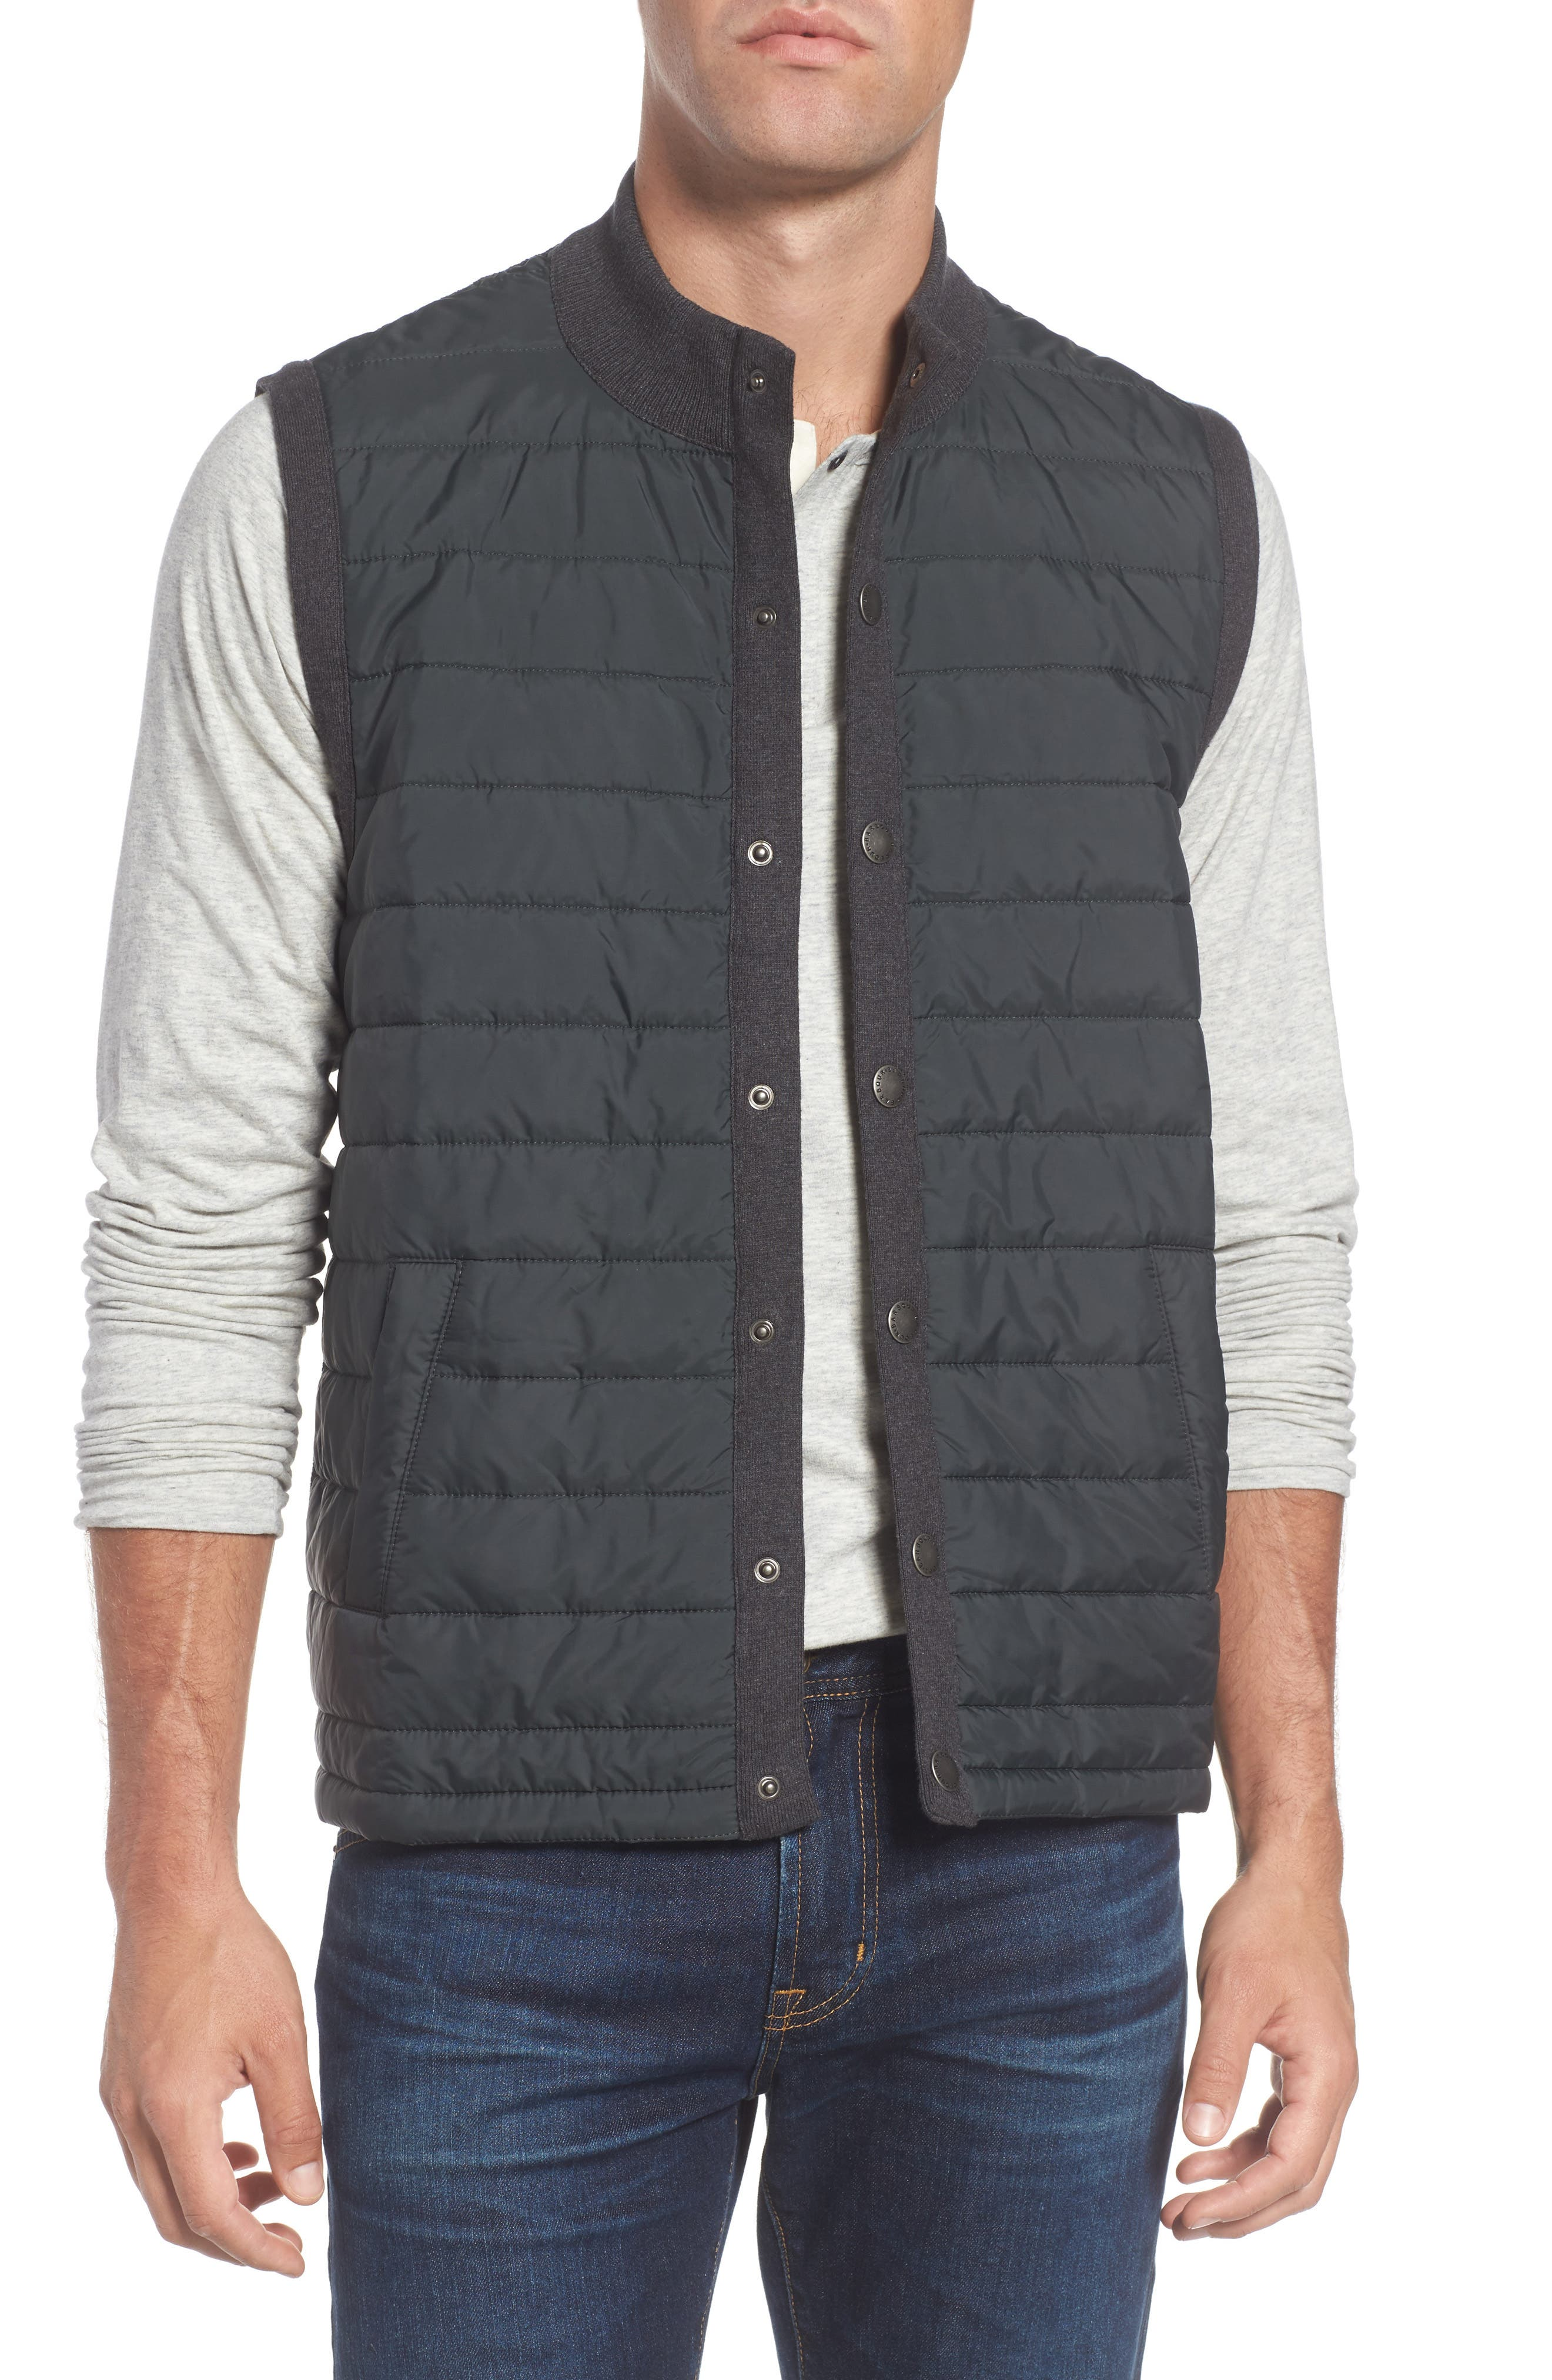 Barbour 'Essential' Tailored Fit Mixed Media Vest